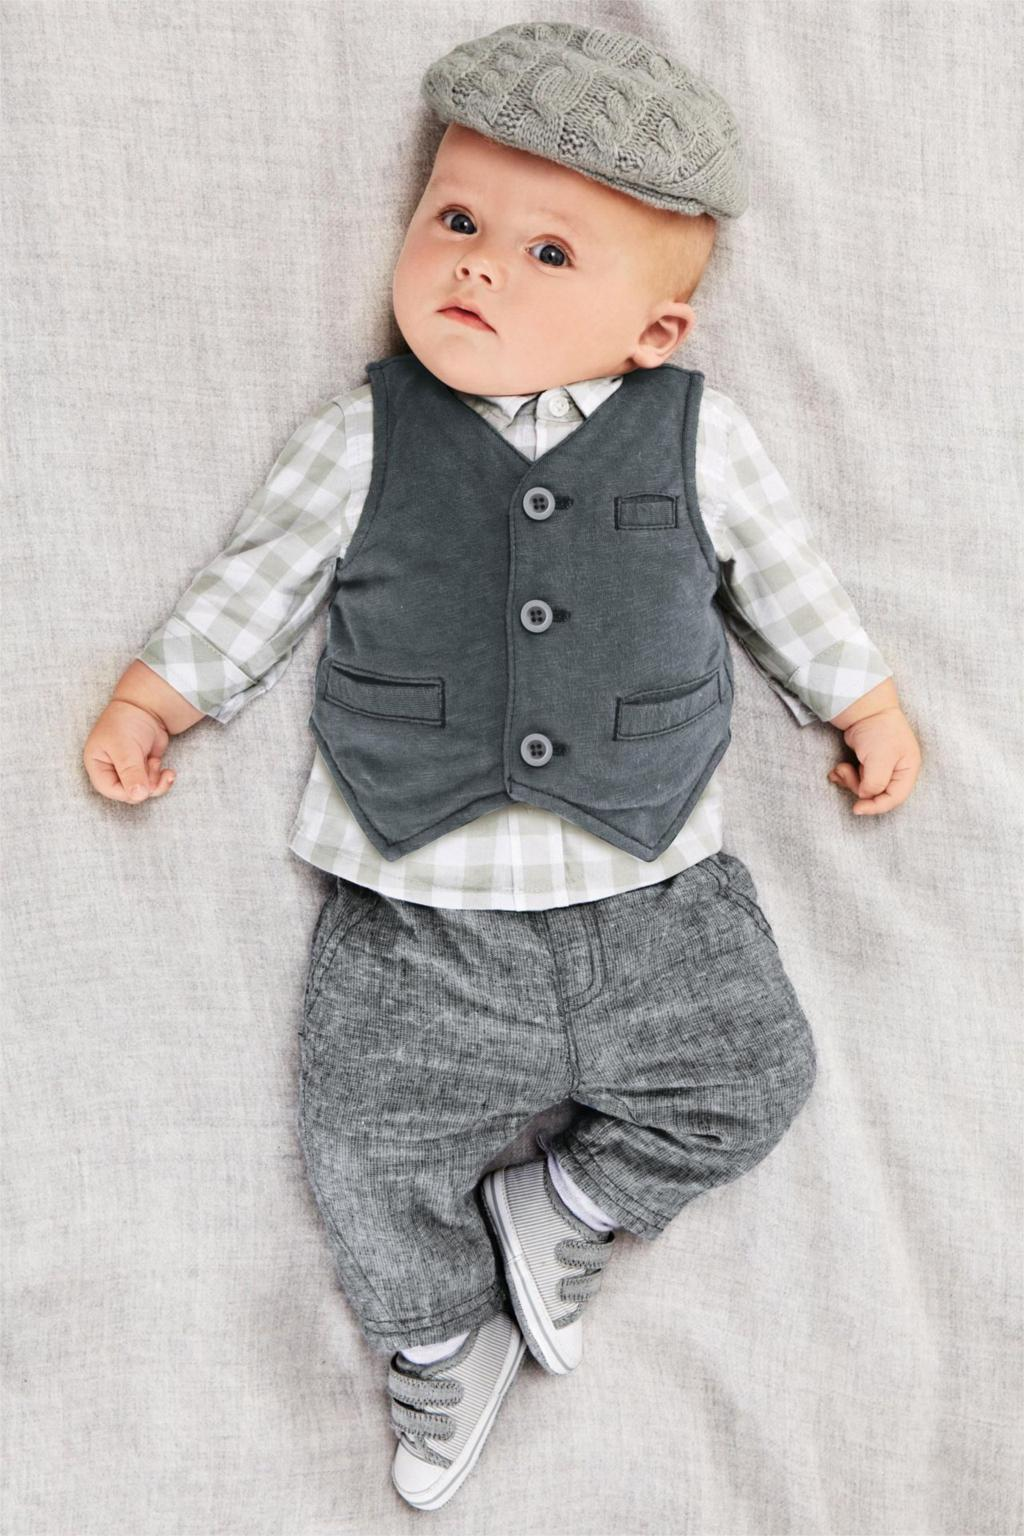 Newborn Baby Boy Outfits For Photos - Cute Baby